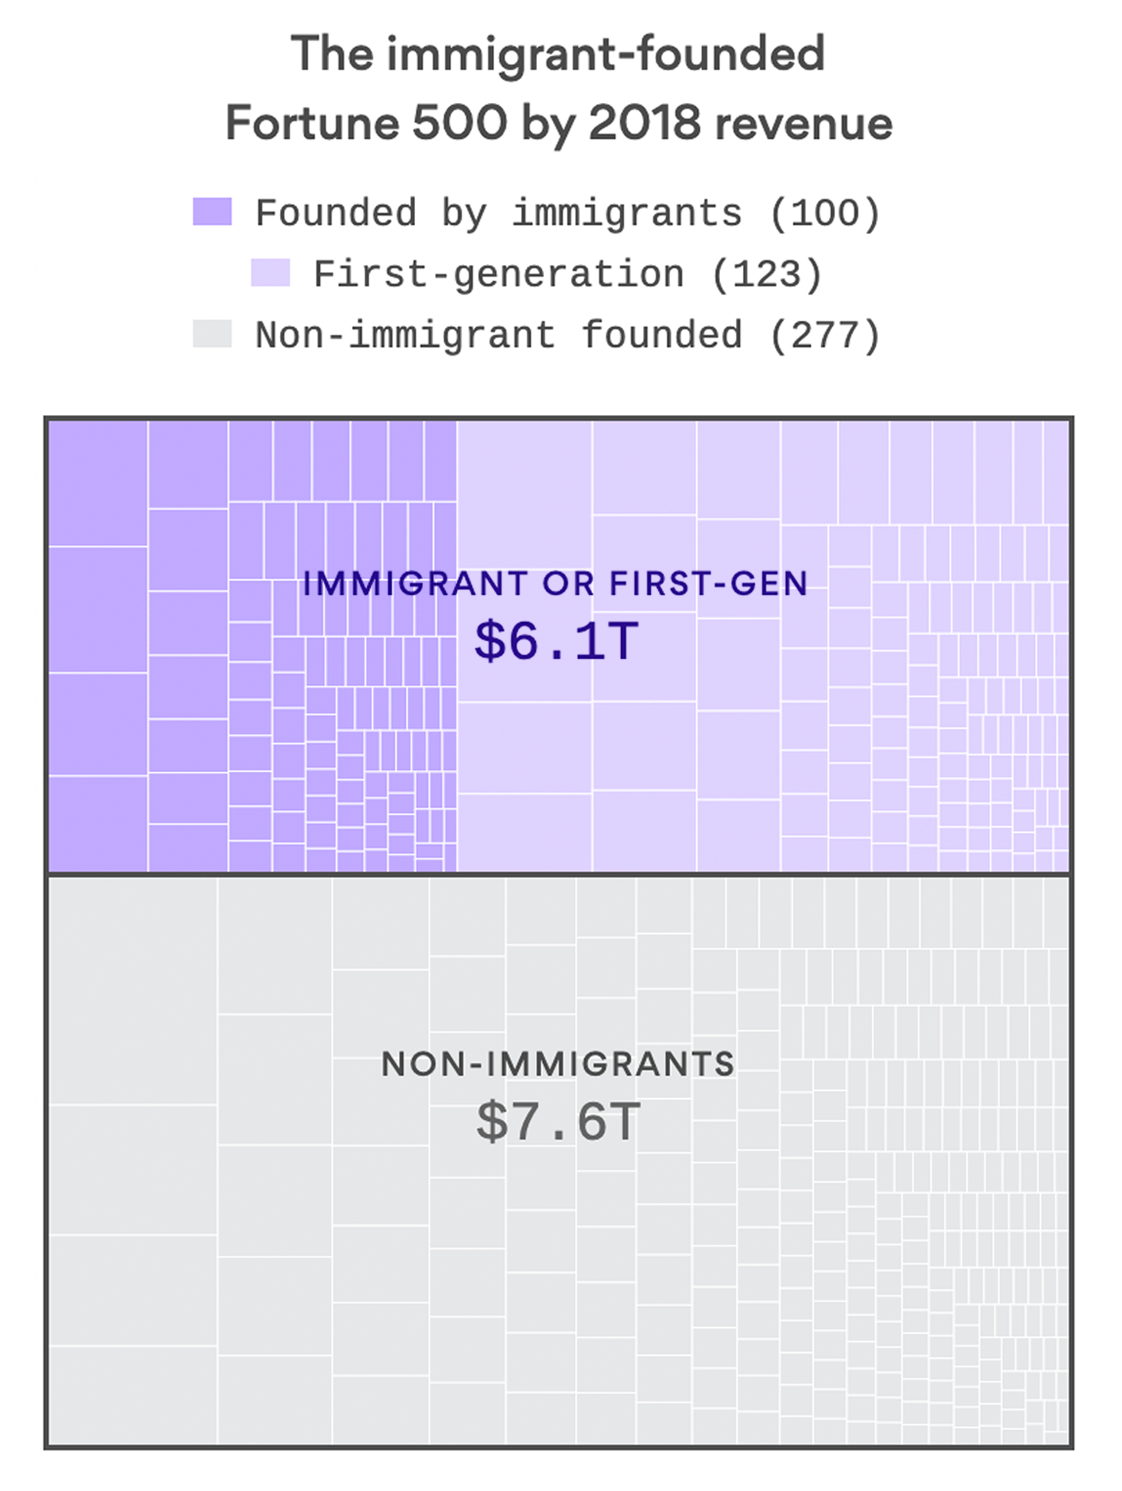 Study: Immigrants and their kids founded 45% of U.S. Fortune 500 companies